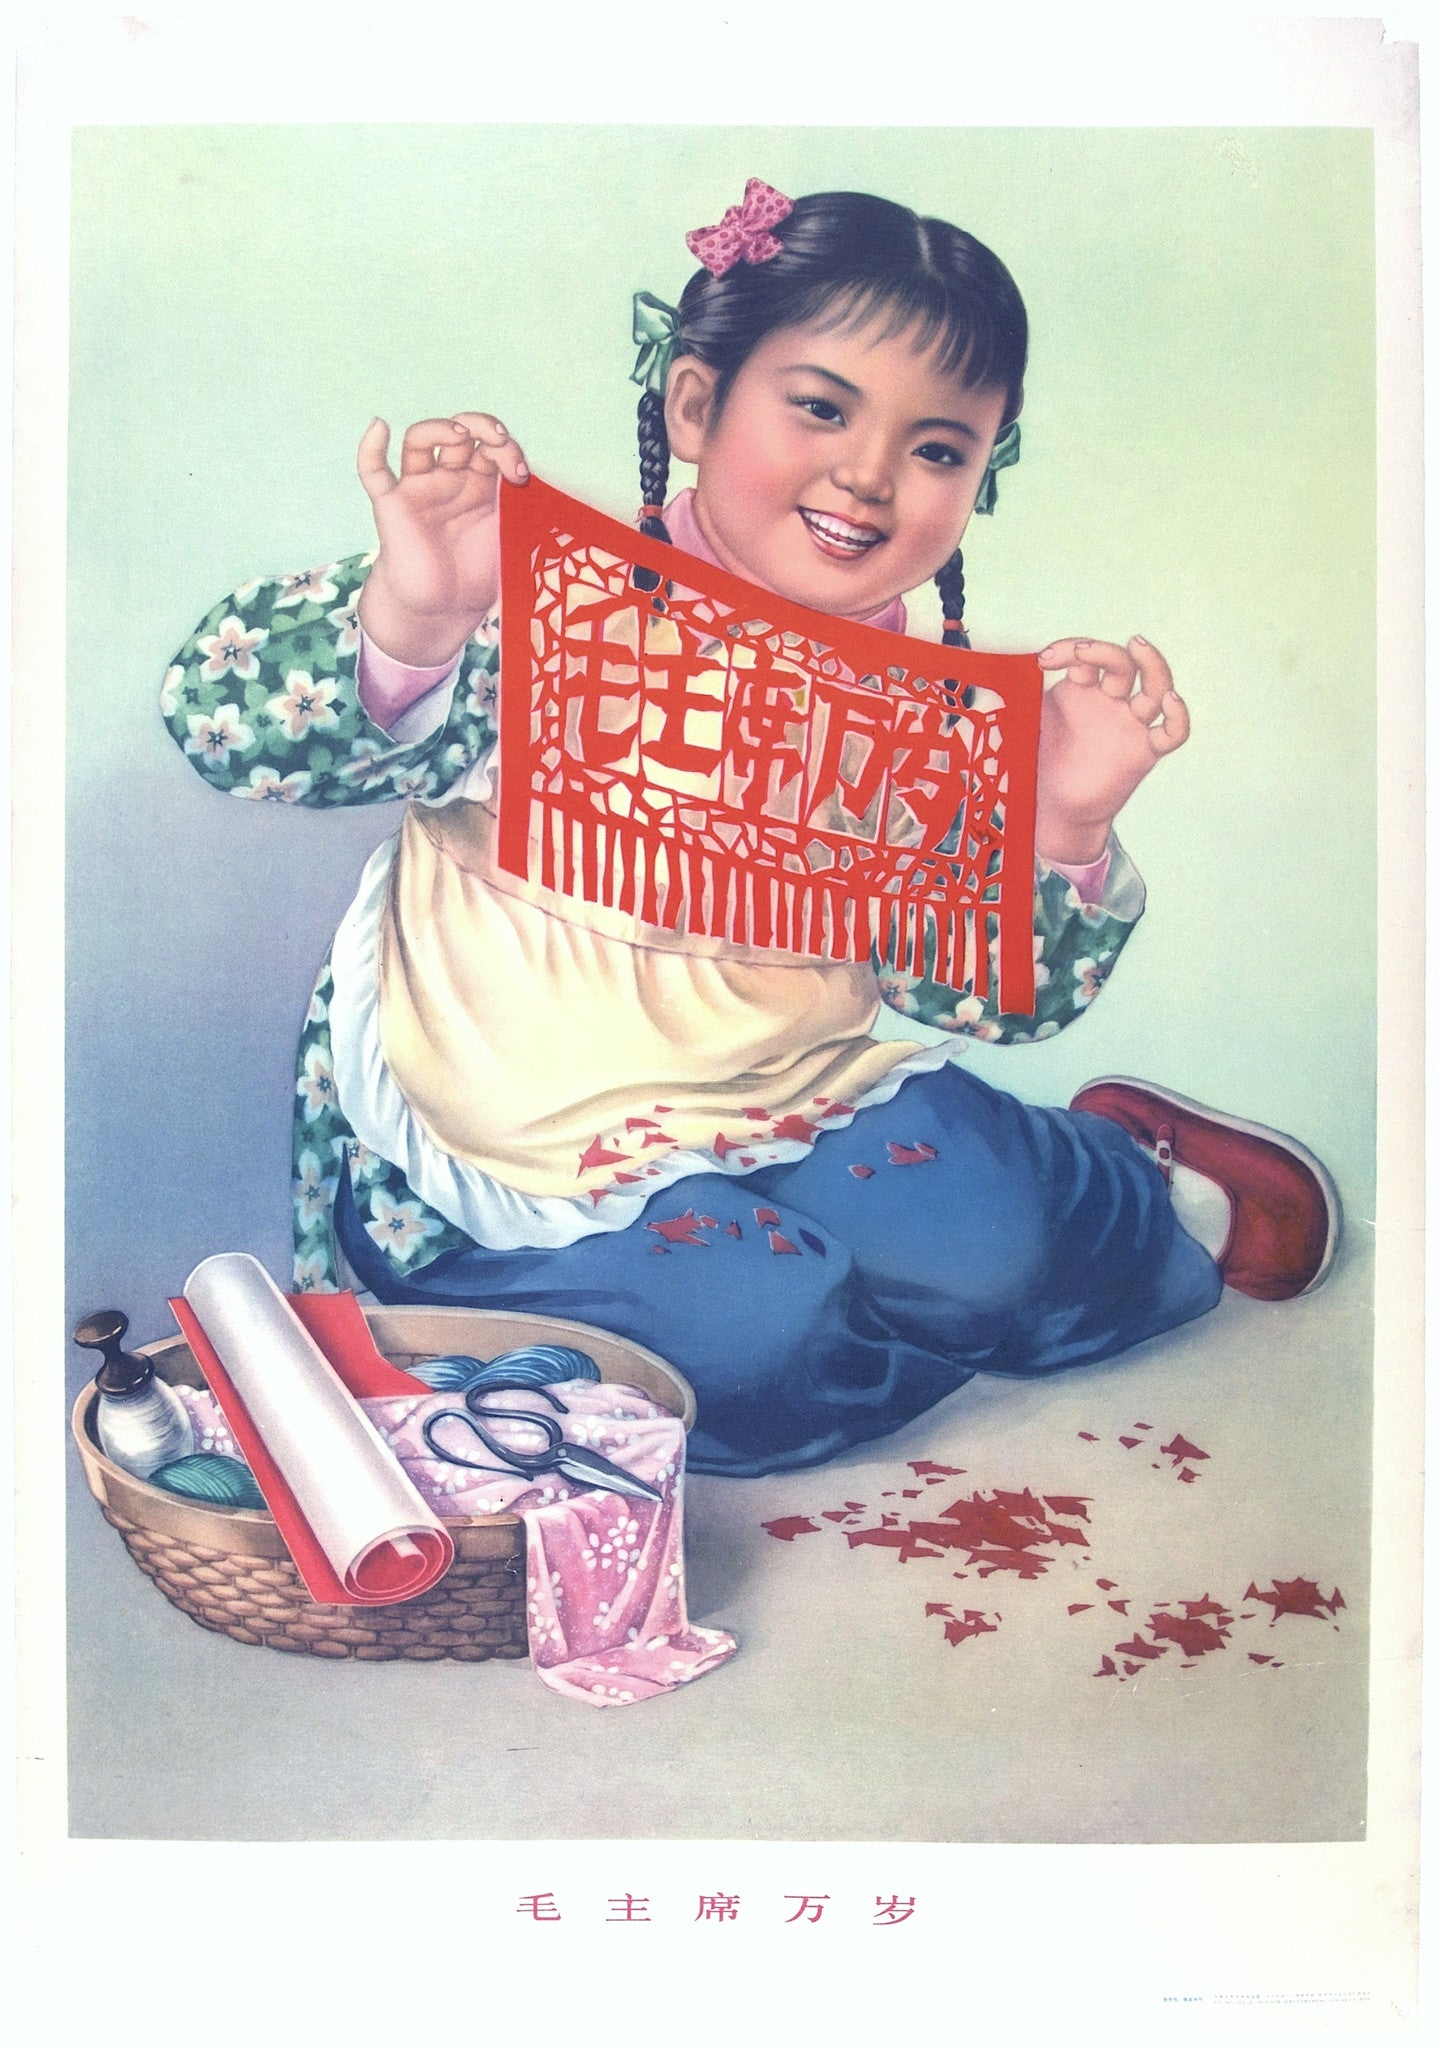 Nianhua of Toddler and Crafts